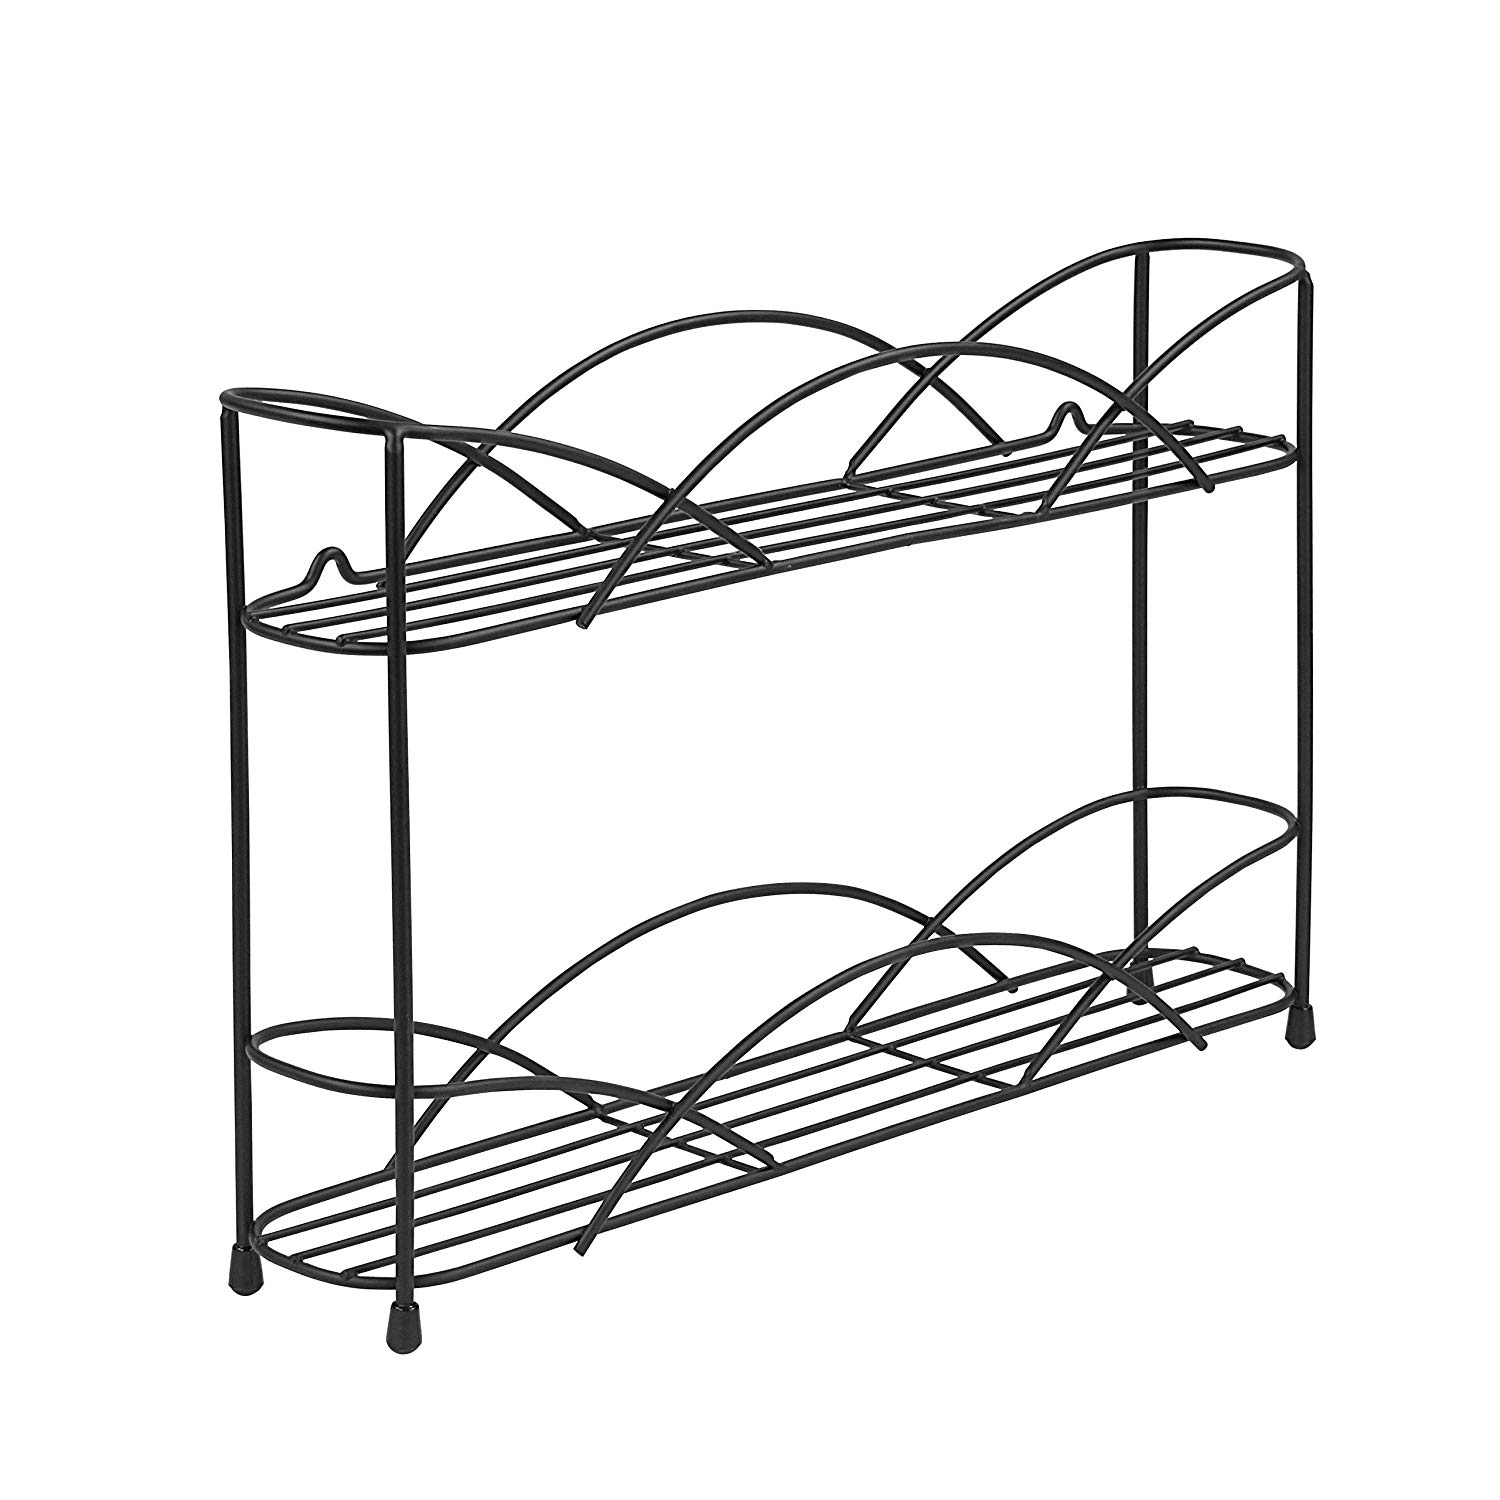 Black Spice Rack 2-Tier